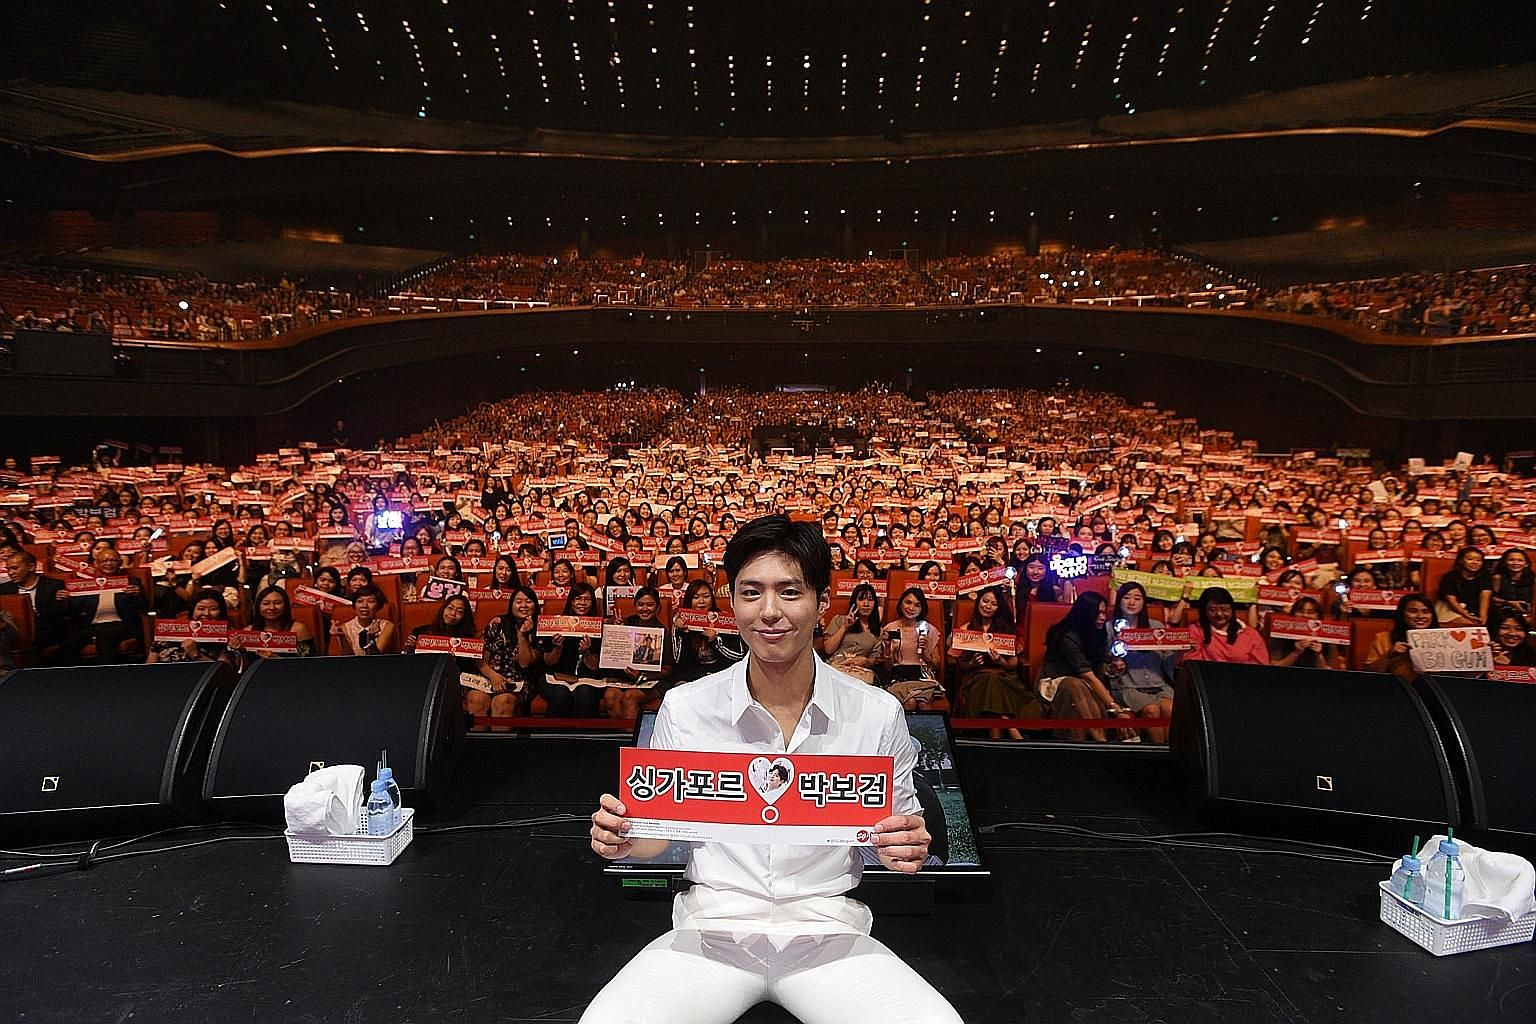 Several South Korean artists such as (clockwise from top left) actors Park Bo-gum and Lee Seung-gi, who is hugging a fan from behind, and girl group Mamamoo held fan meetings in Singapore.